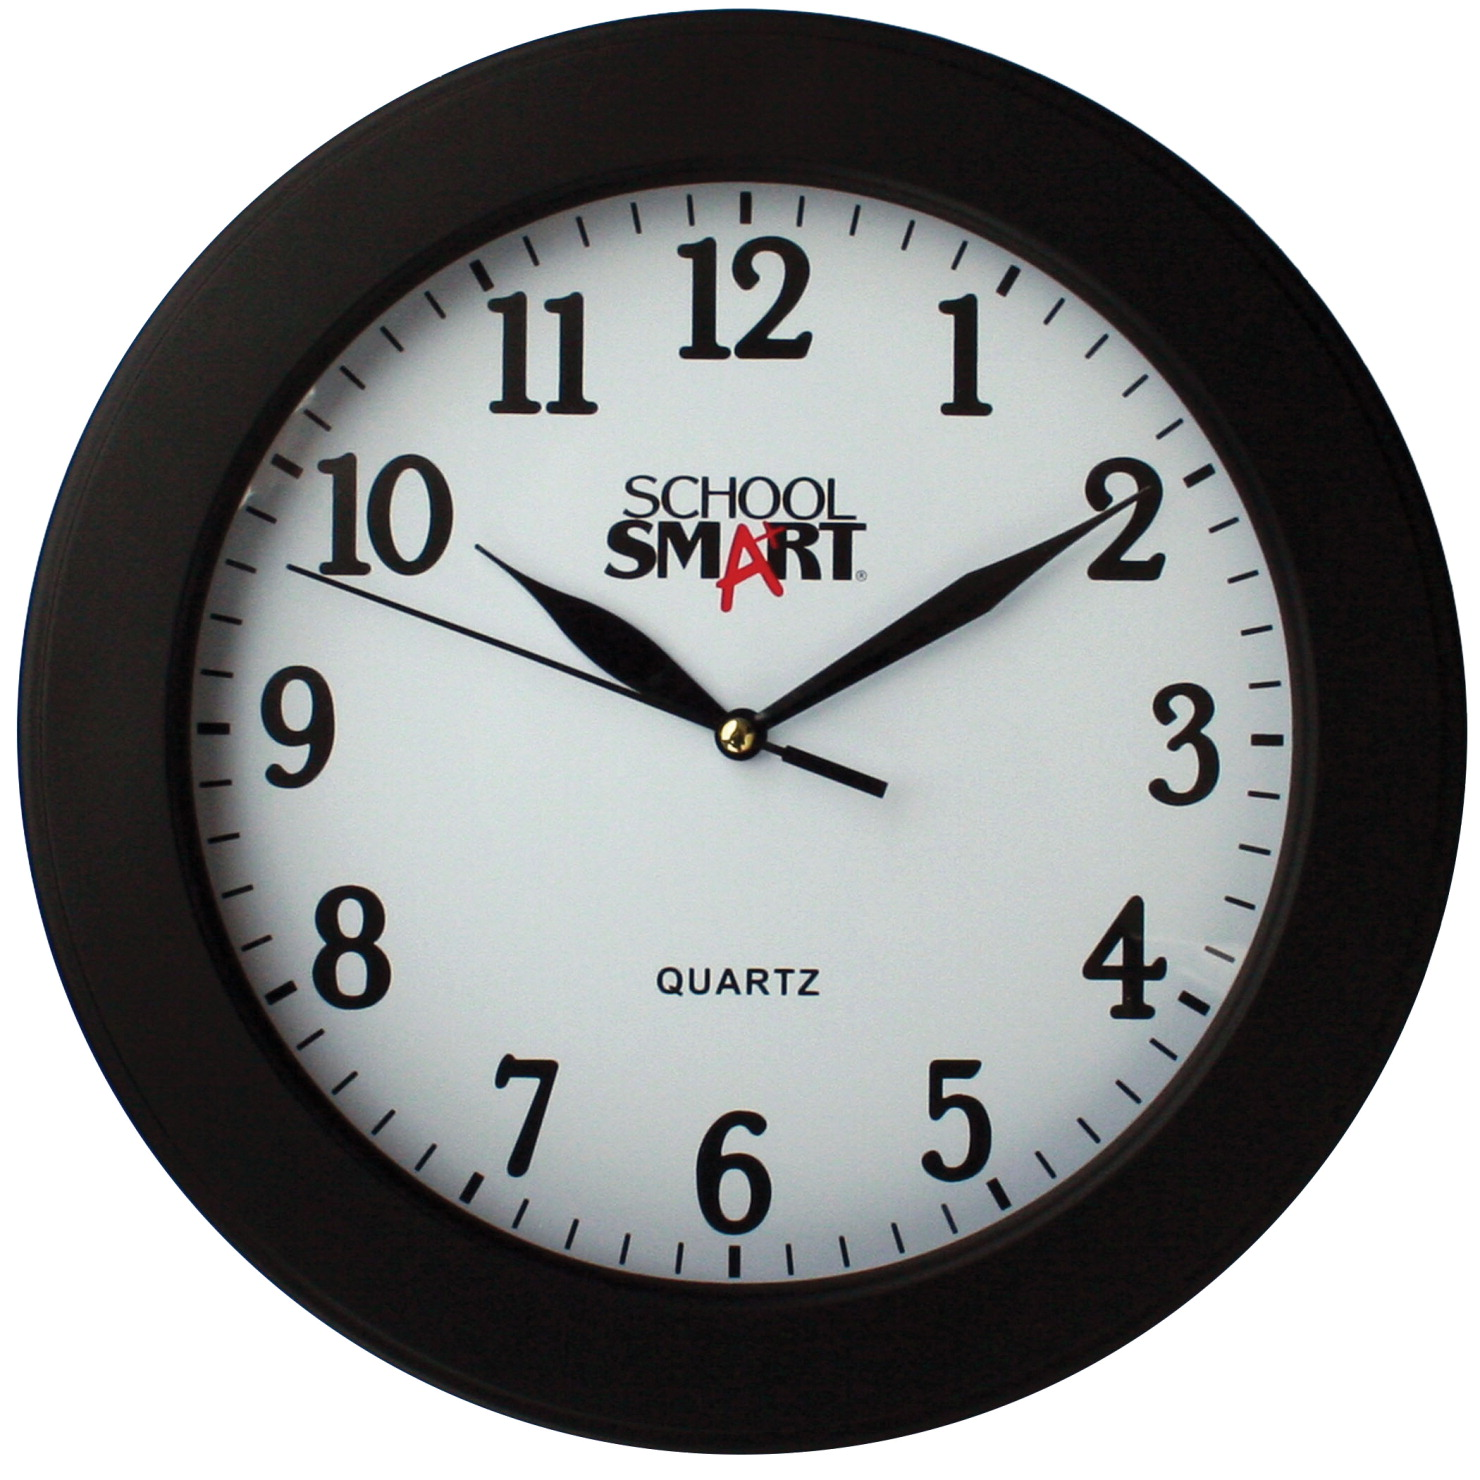 School Smart Wall Clock 10 Inches White Dial And Black